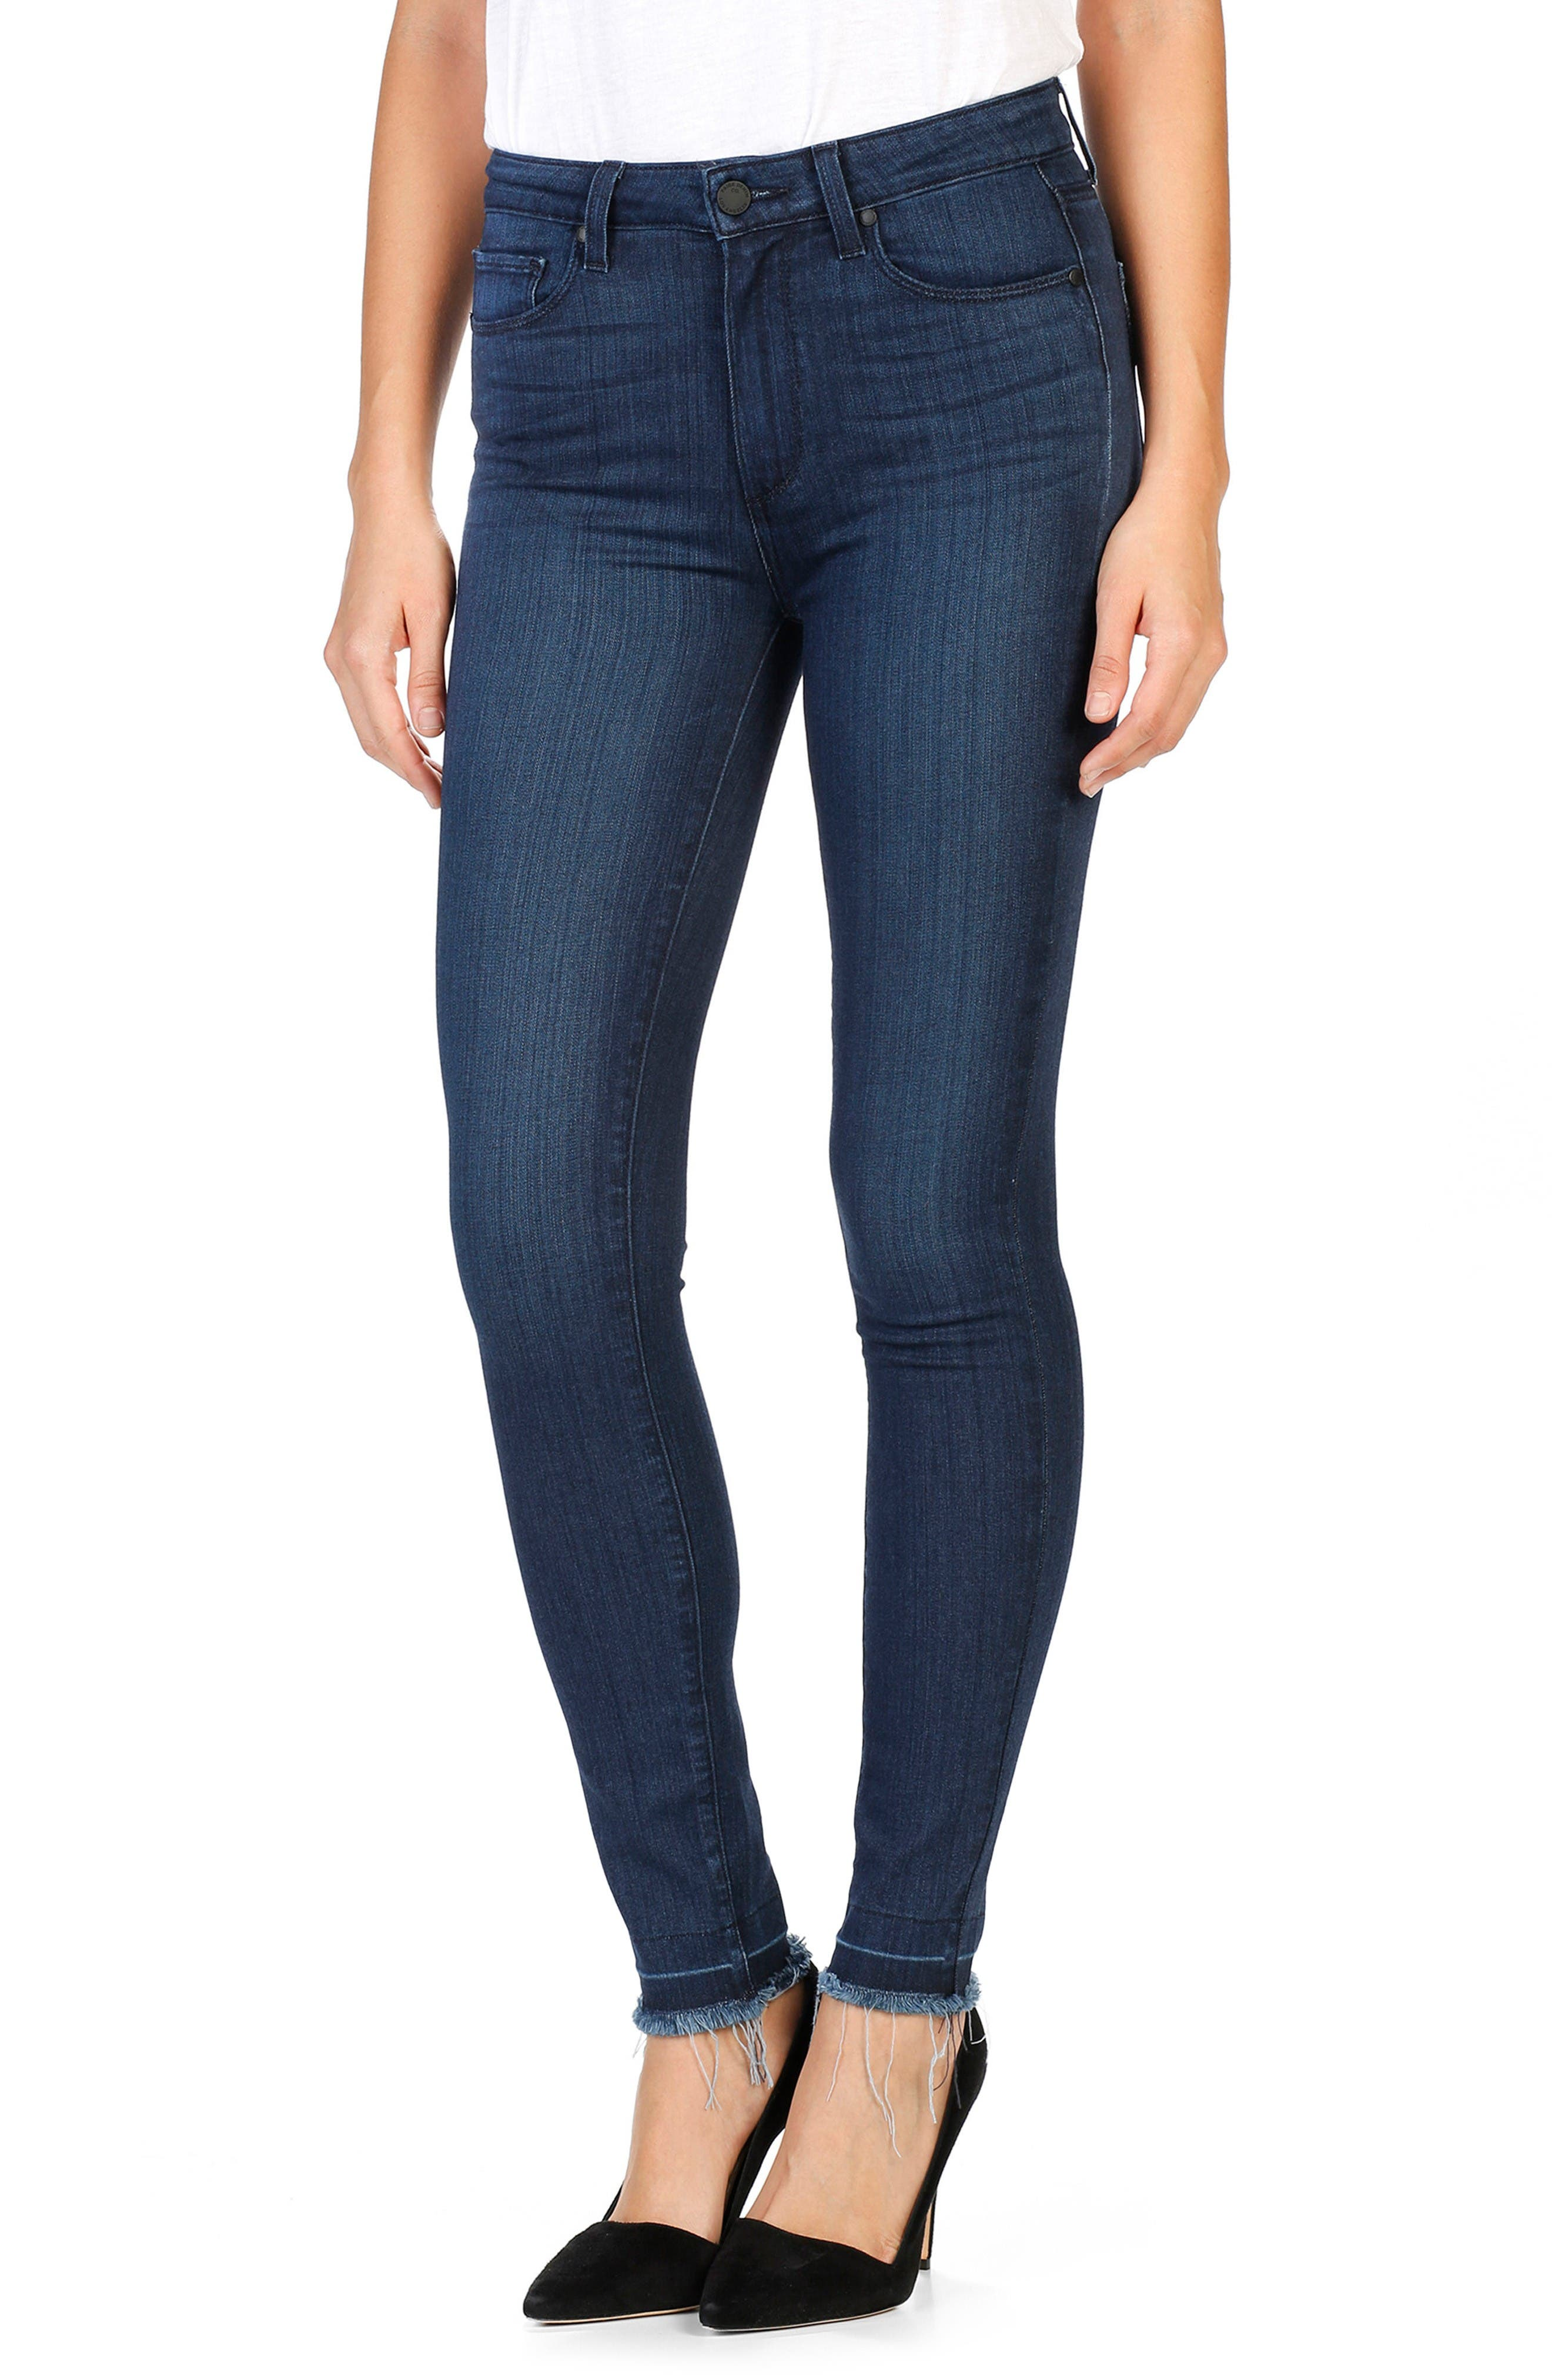 Alternate Image 1 Selected - PAIGE Hoxton Ankle Ultra Skinny Jeans (Henrietta)